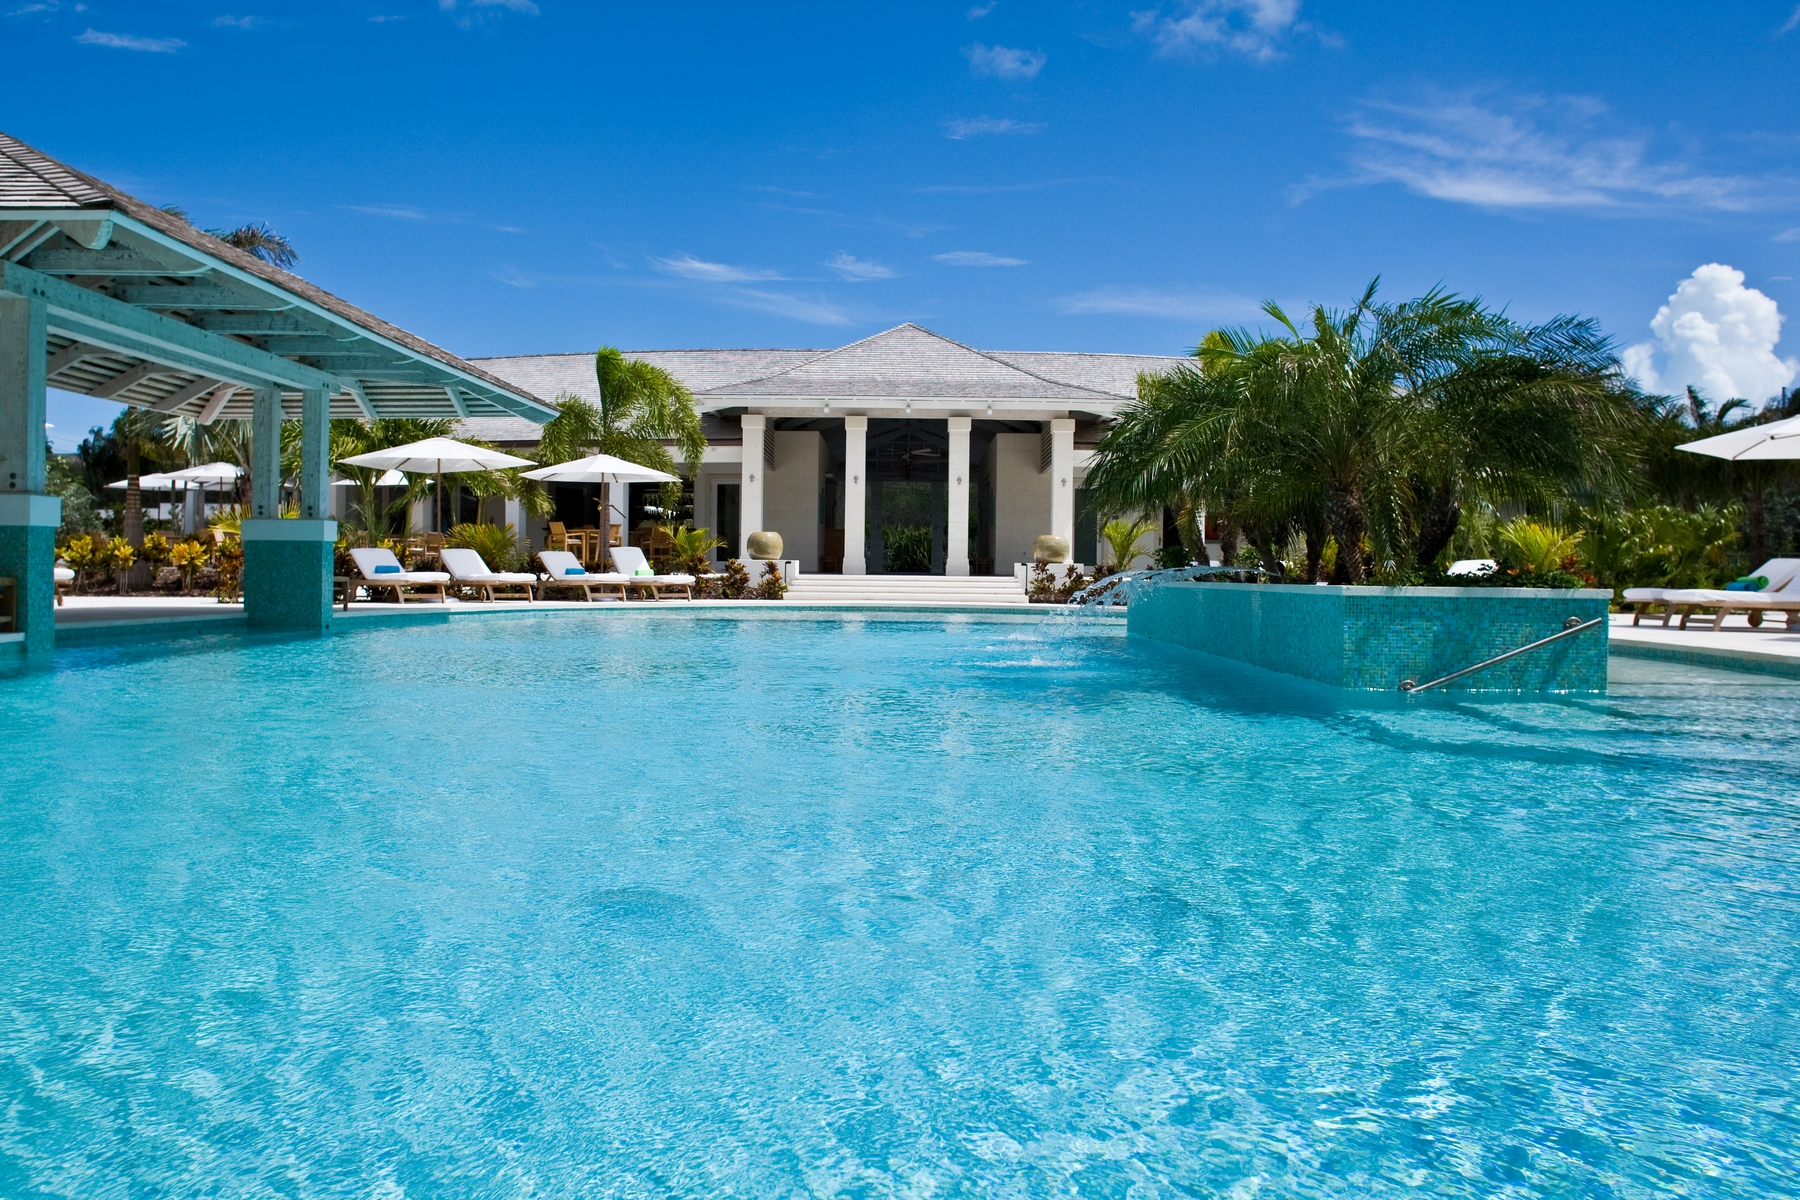 Additional photo for property listing at West Bay Club - Suite 210 West Bay Club, Grace Bay, Providenciales Turks And Caicos Islands